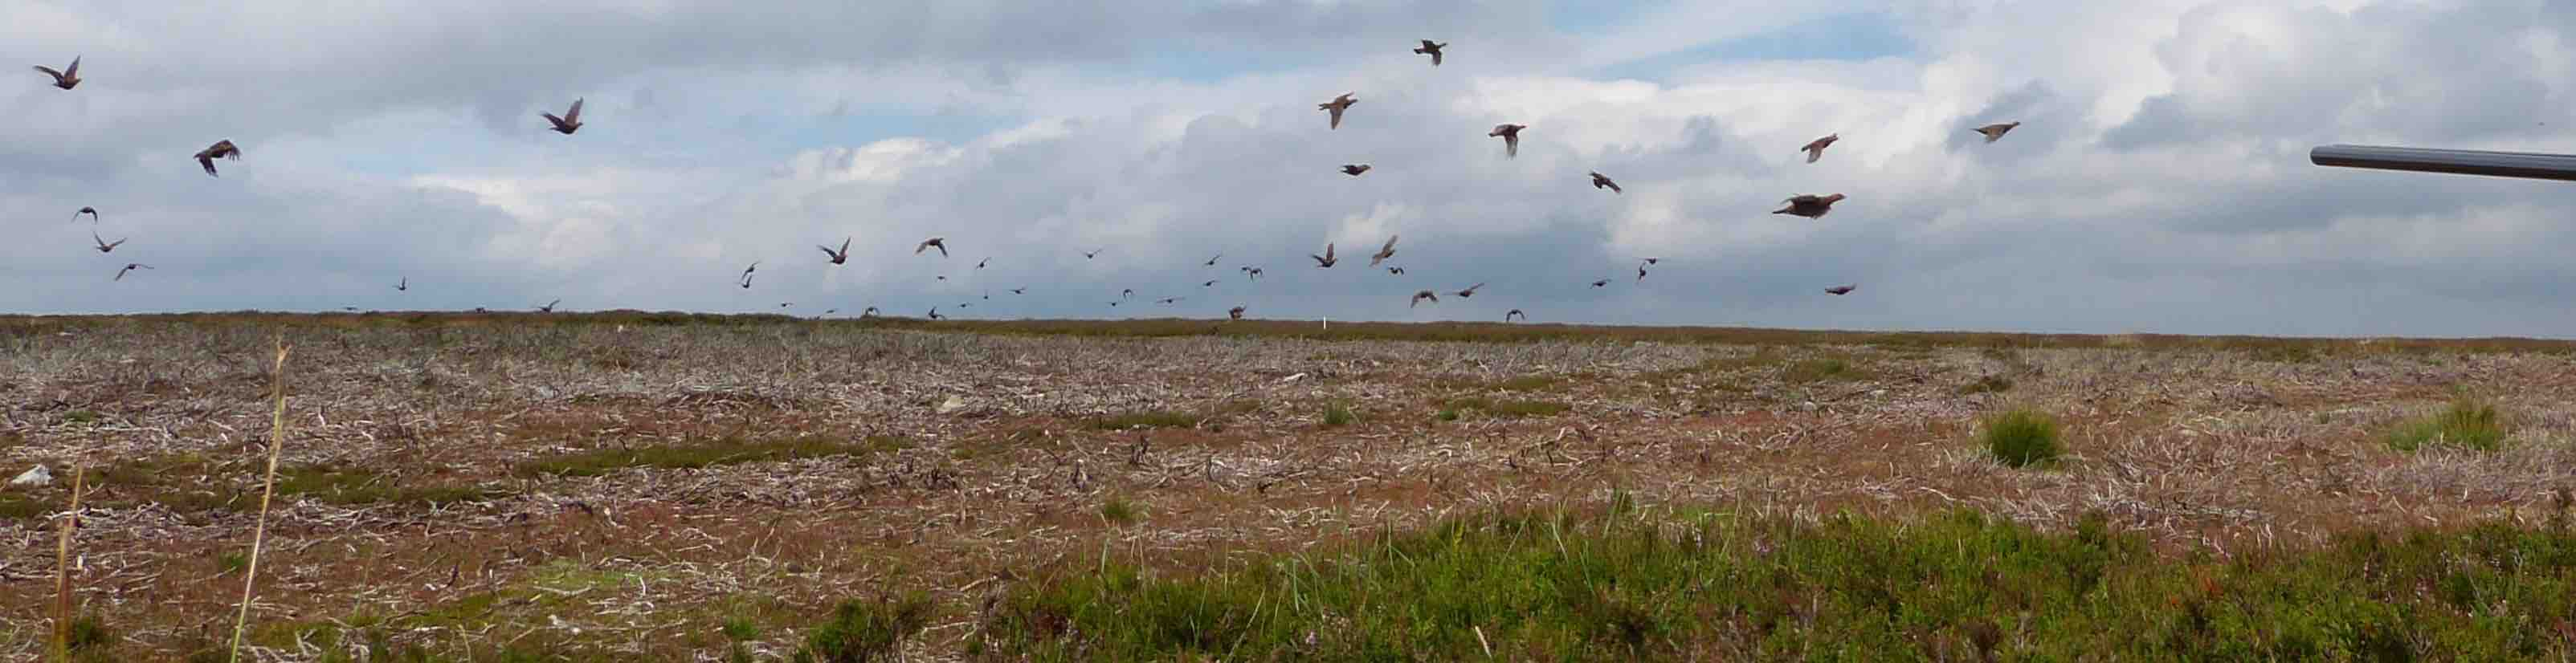 Driven red grouse over young heather burning moorland habitat for sustainable conservation shooting